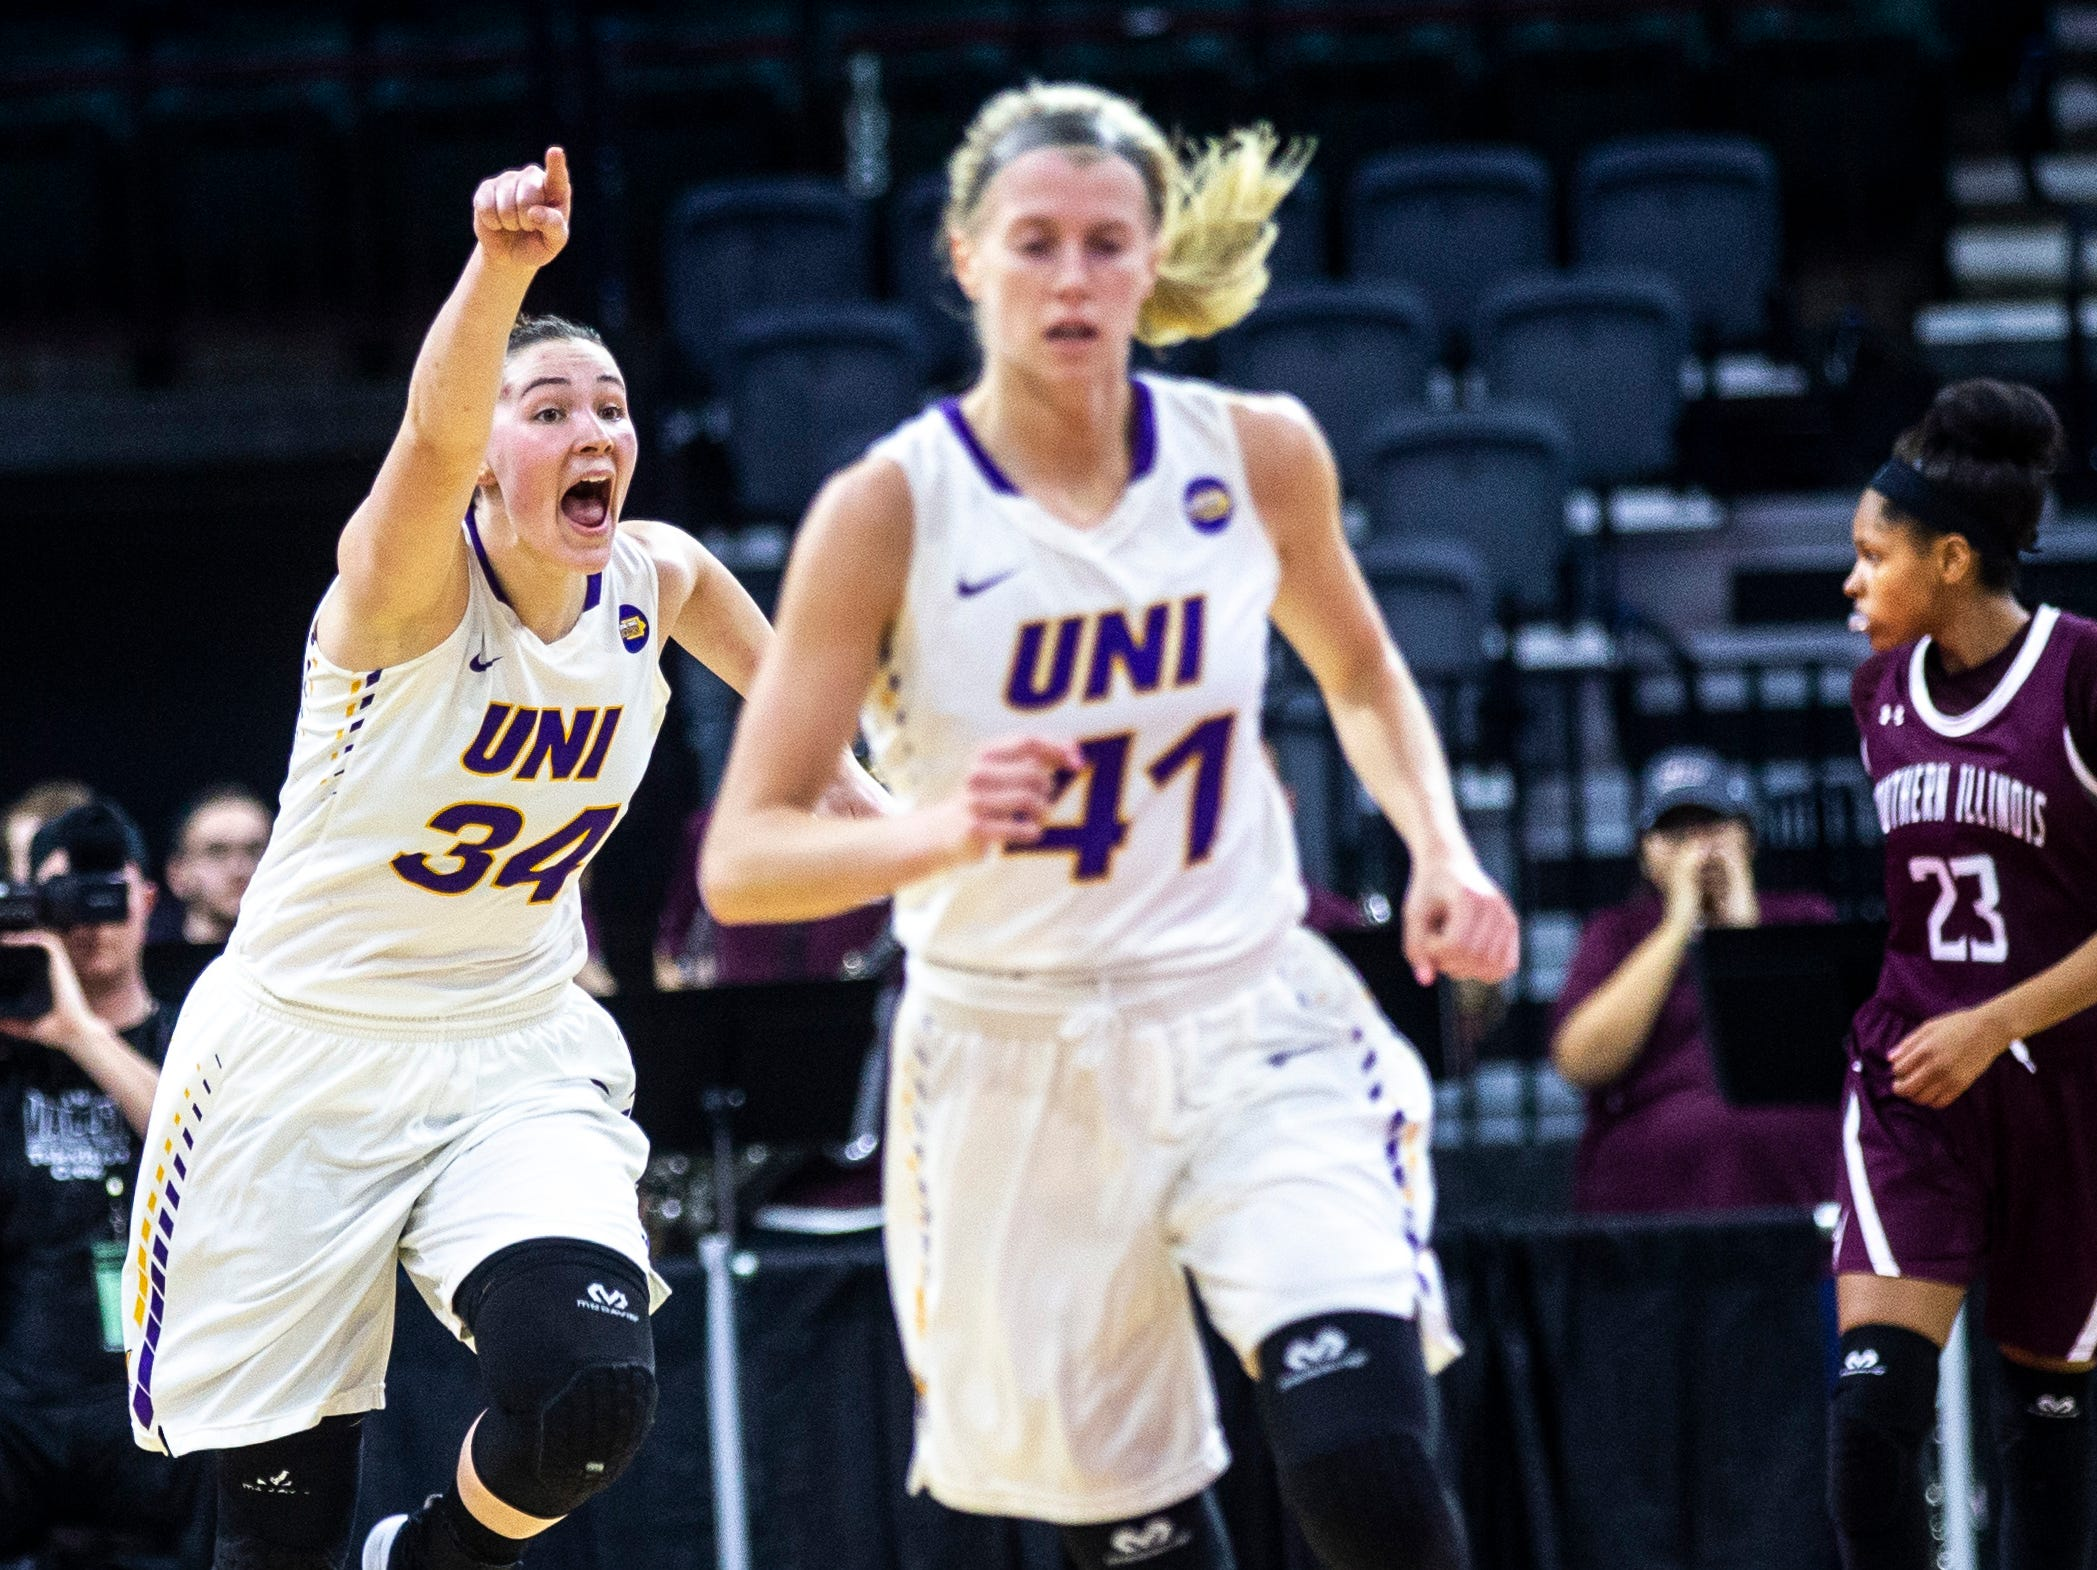 Northern Iowa forward Taylor Hagen (34) calls out to teammates while running back on defense with Northern Iowa guard Abby Gerrits (41) during a NCAA Missouri Valley Conference women's basketball quarterfinal tournament game, Friday, March 15, 2019, at the TaxSlayer Center in Moline, Illinois.